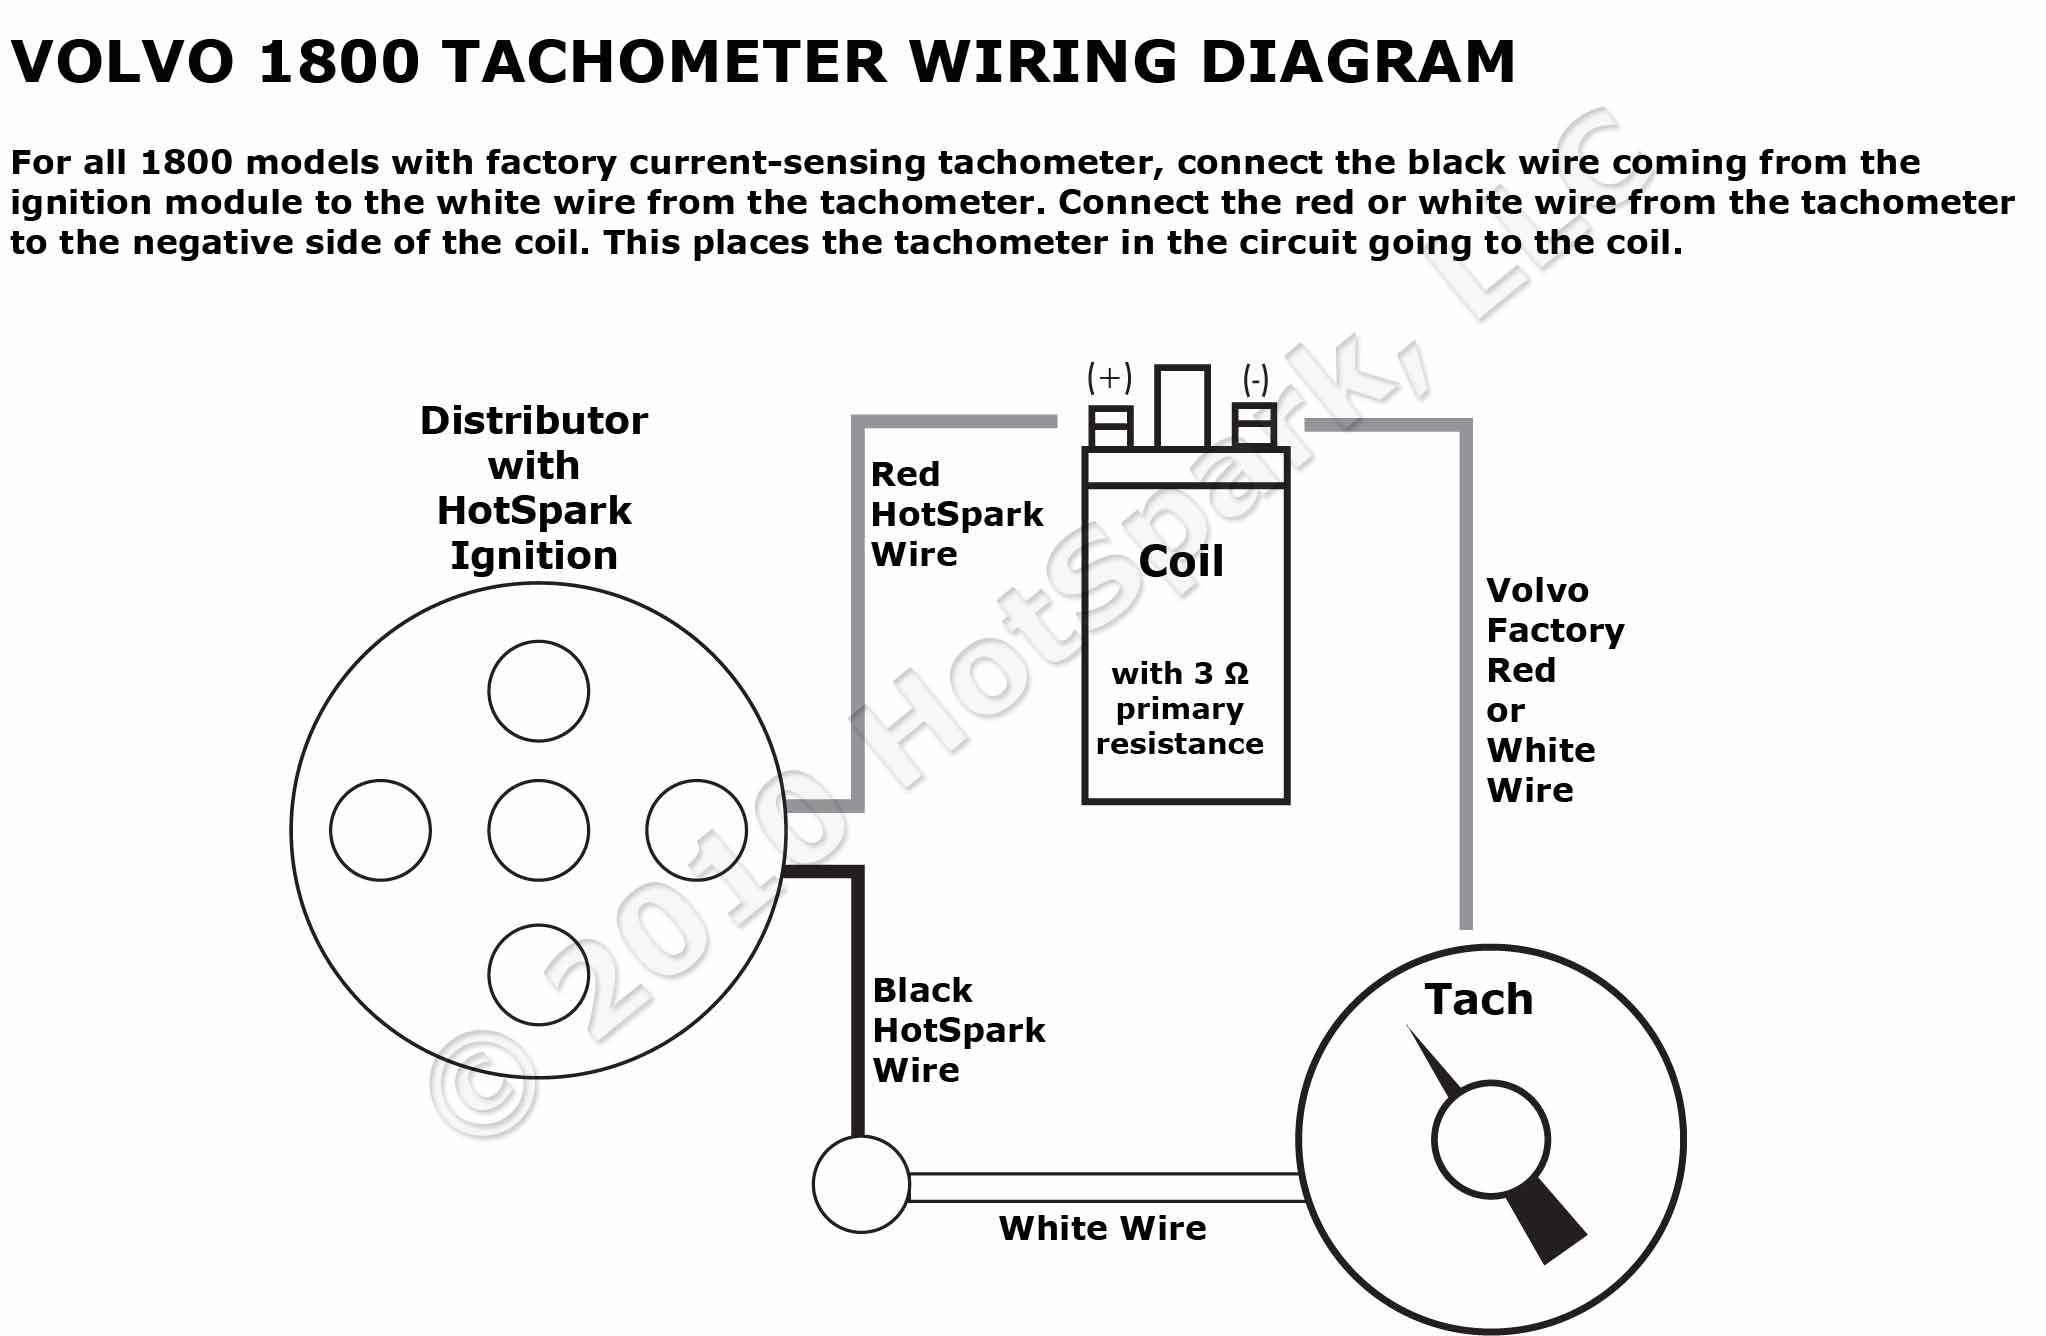 Volvo 1800 Tachometer and Hot Spark Wiring Diagram tach wiring diagram autometer tach wiring diagram \u2022 wiring faze tach wiring diagram at nearapp.co